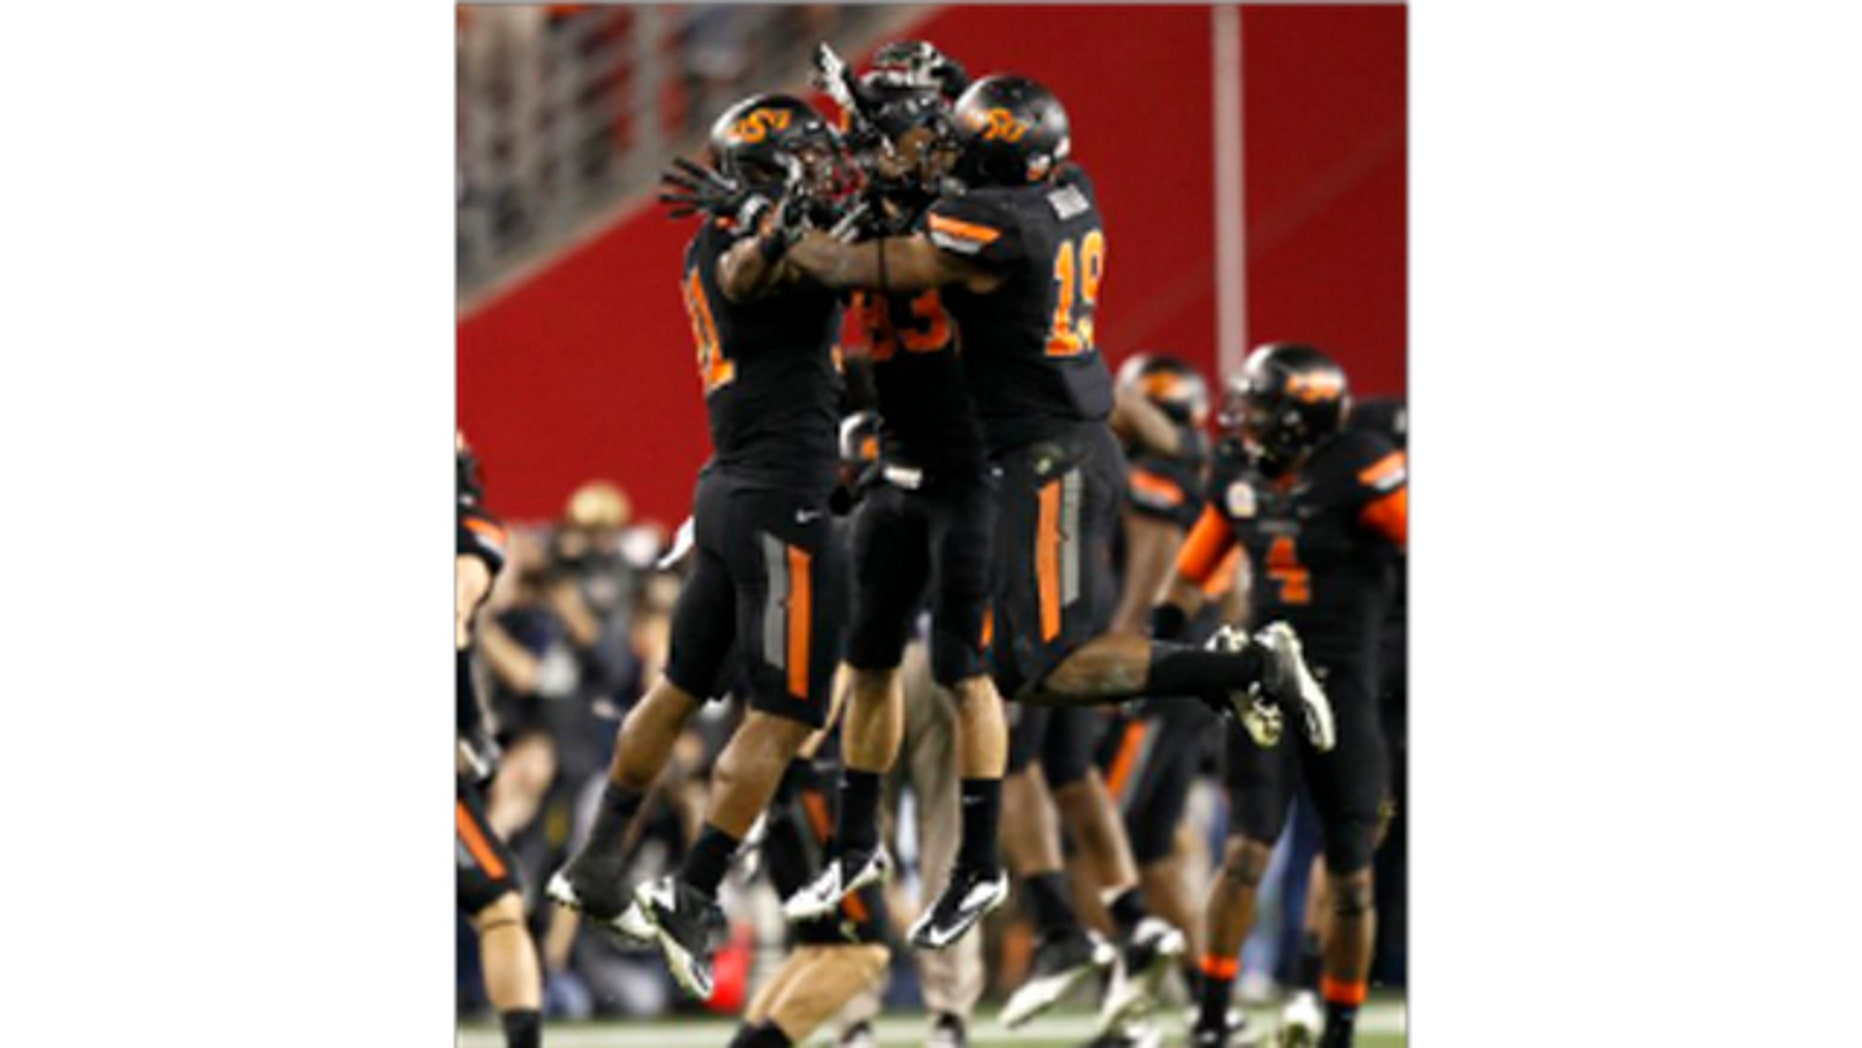 Oklahoma State cornerback Brodrick Brown (19), Colton Chelf, center, and Shaun Lewis, right, celebrate a missed field goal attempt by Stanford during overtime of the Fiesta Bowl NCAA college football game Monday, Jan. 2, 2012, in Glendale, Ariz.